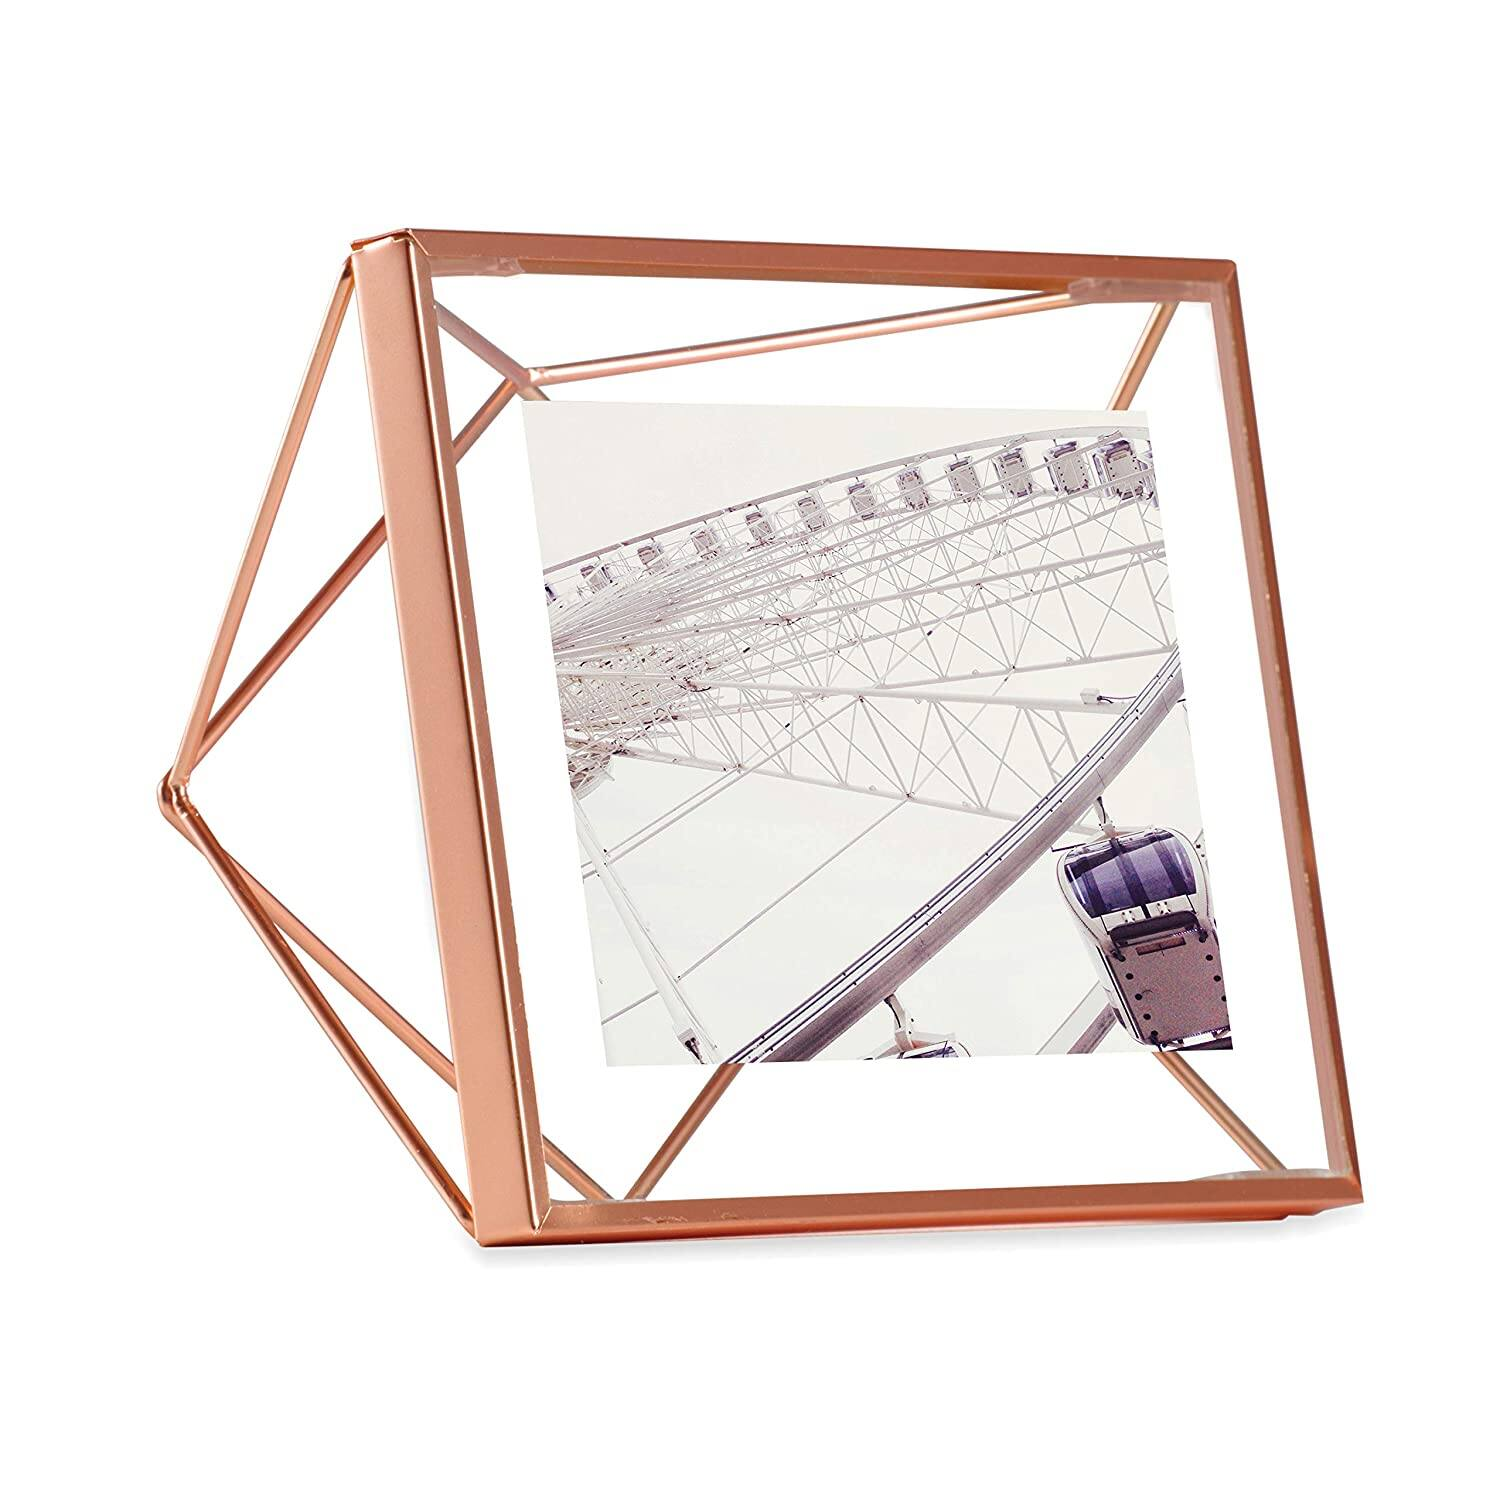 Umbra Prisma Picture Frame, 4x4 Photo Display for Desk or Wall, Copper $6.96